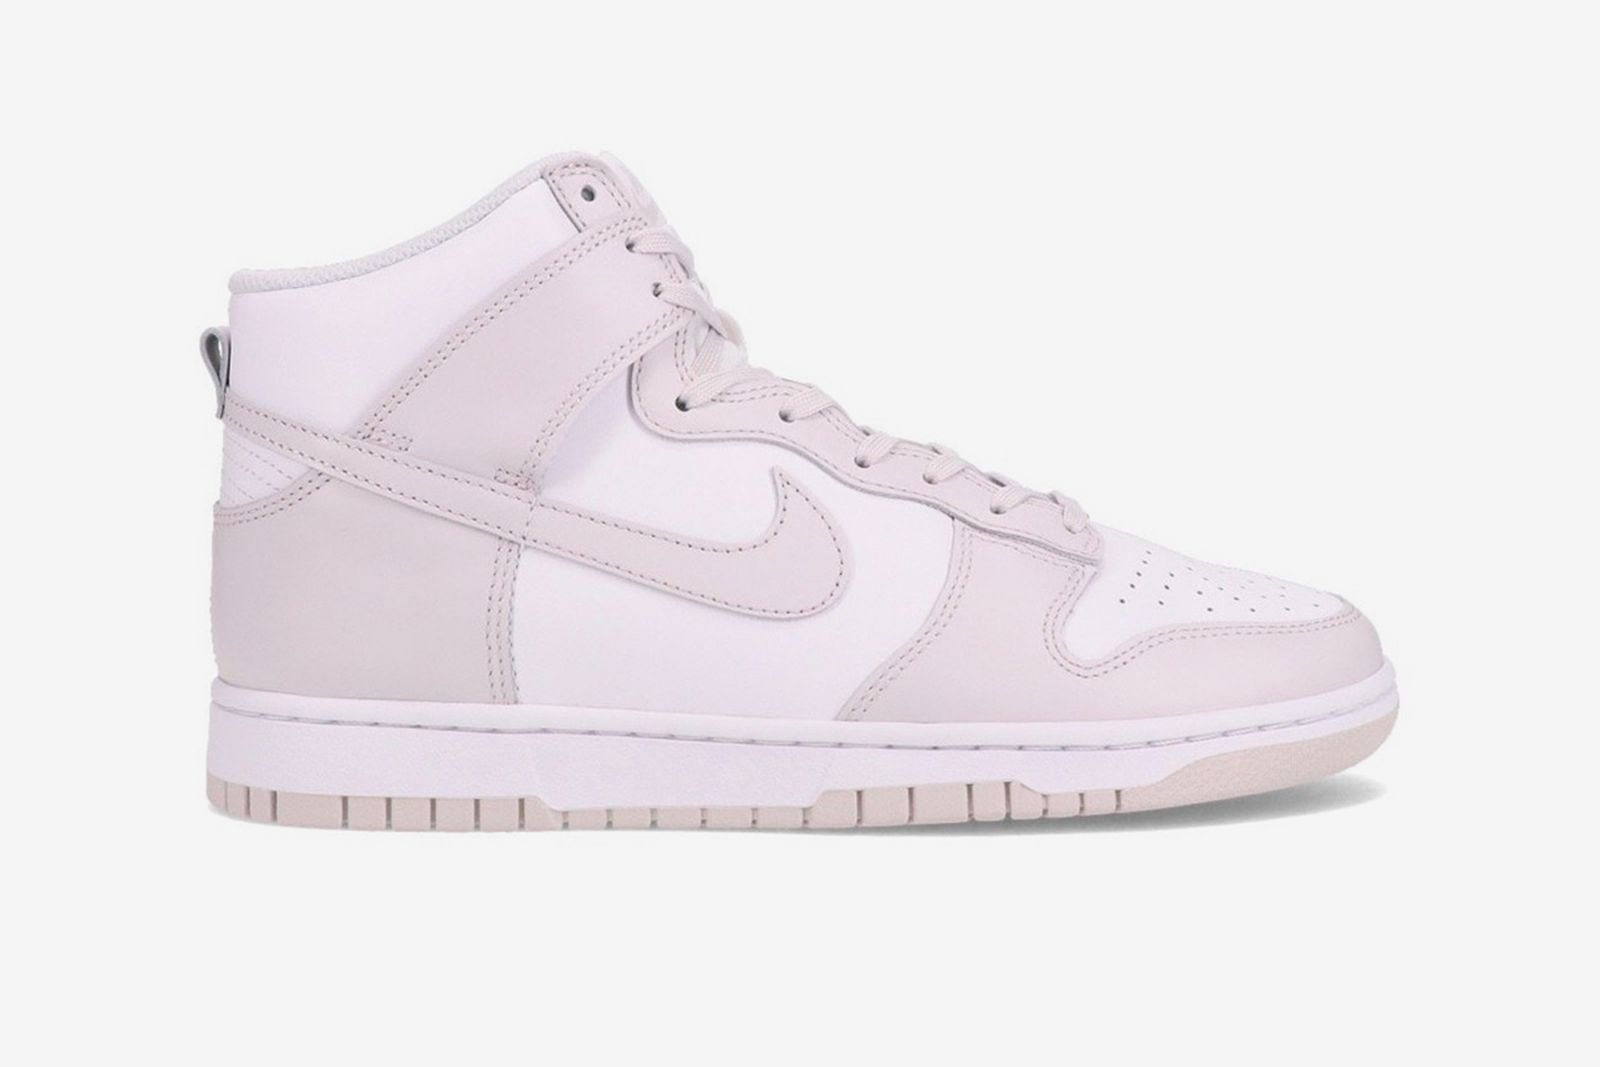 nike-dunks-january-2021-release-date-price-16